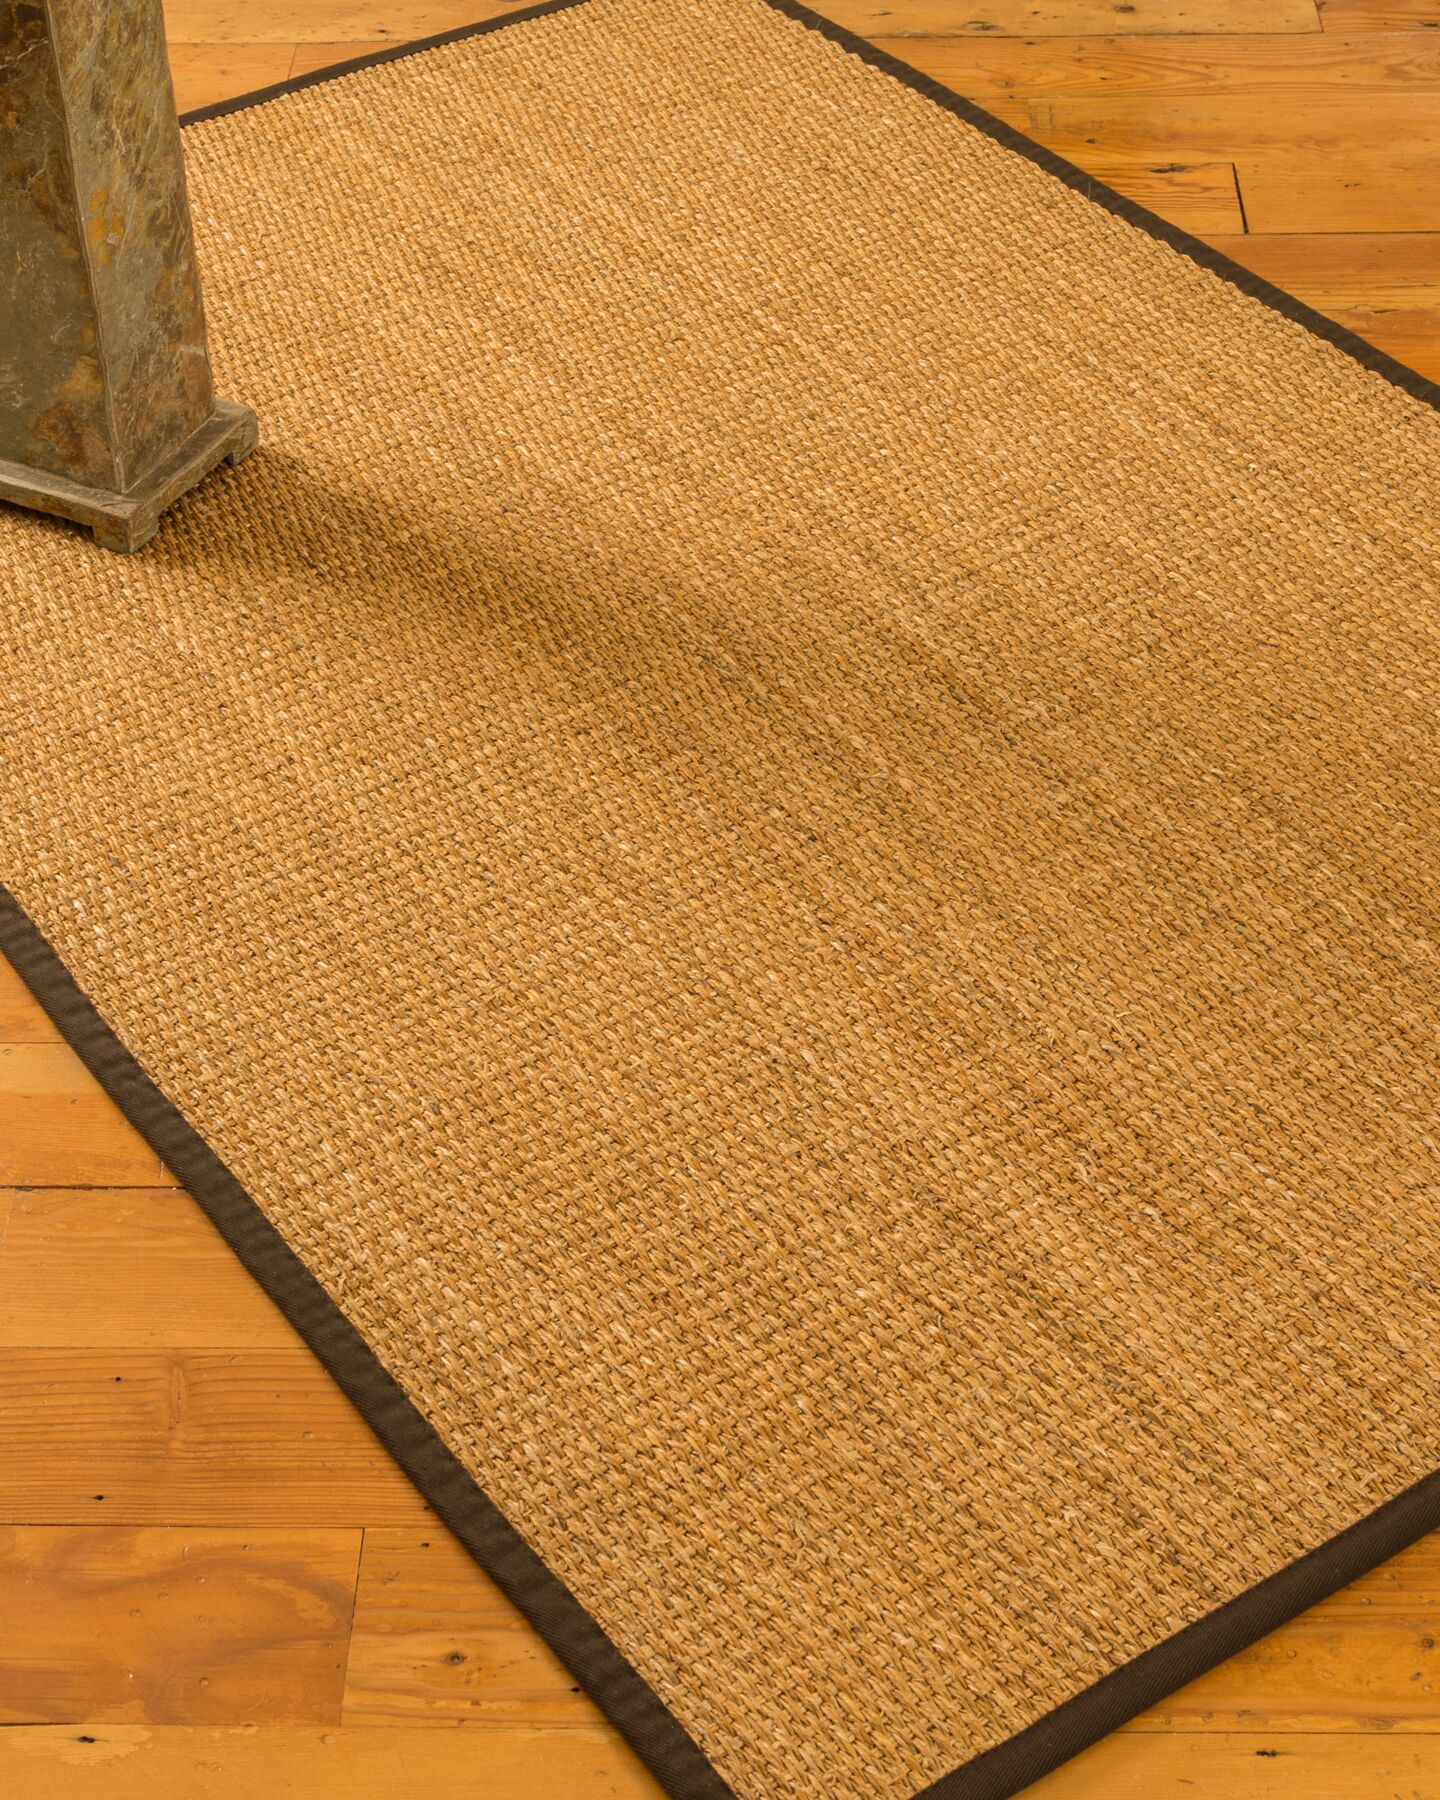 Rainier Hand-Woven Beige/Fudge Brown Area Rug Rug Size: Rectangle 8' x 10'